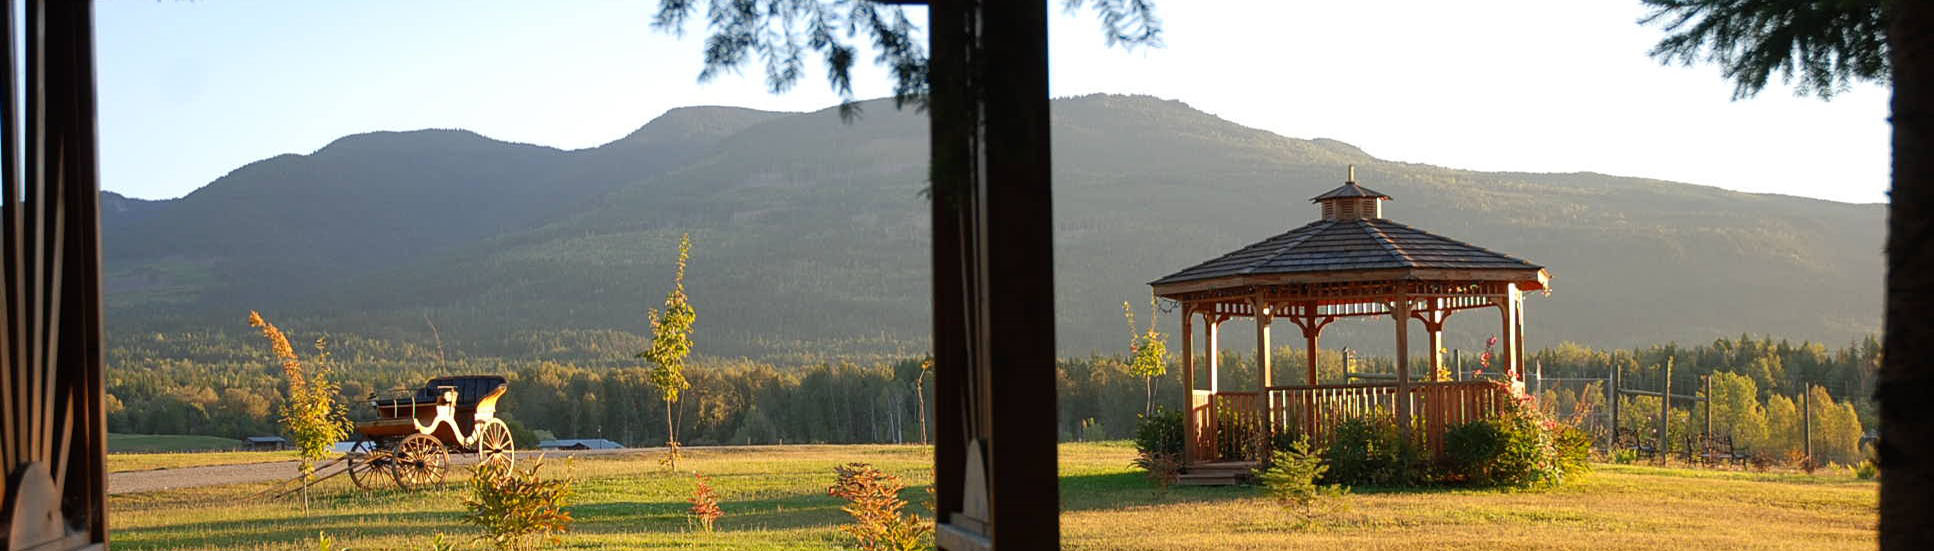 view of a carriage near a gazebo, late afternoon